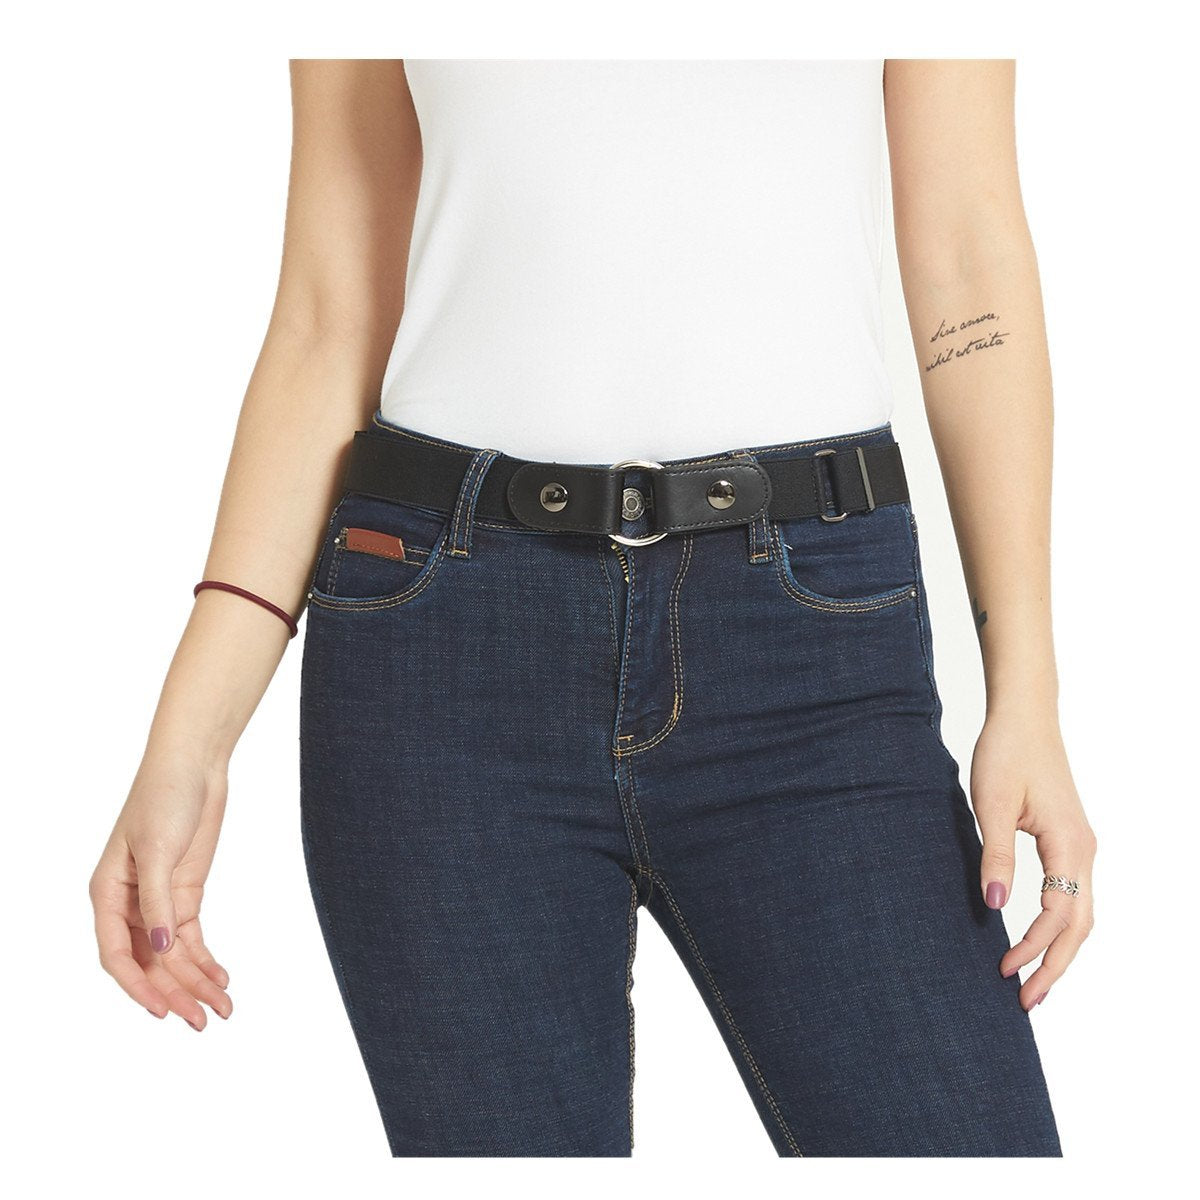 Buckle-less No Bulge Stretch Belt for Girls No Buckle and Hassle Kids Girls Invisible Belts 24 Navy Blue Red 002